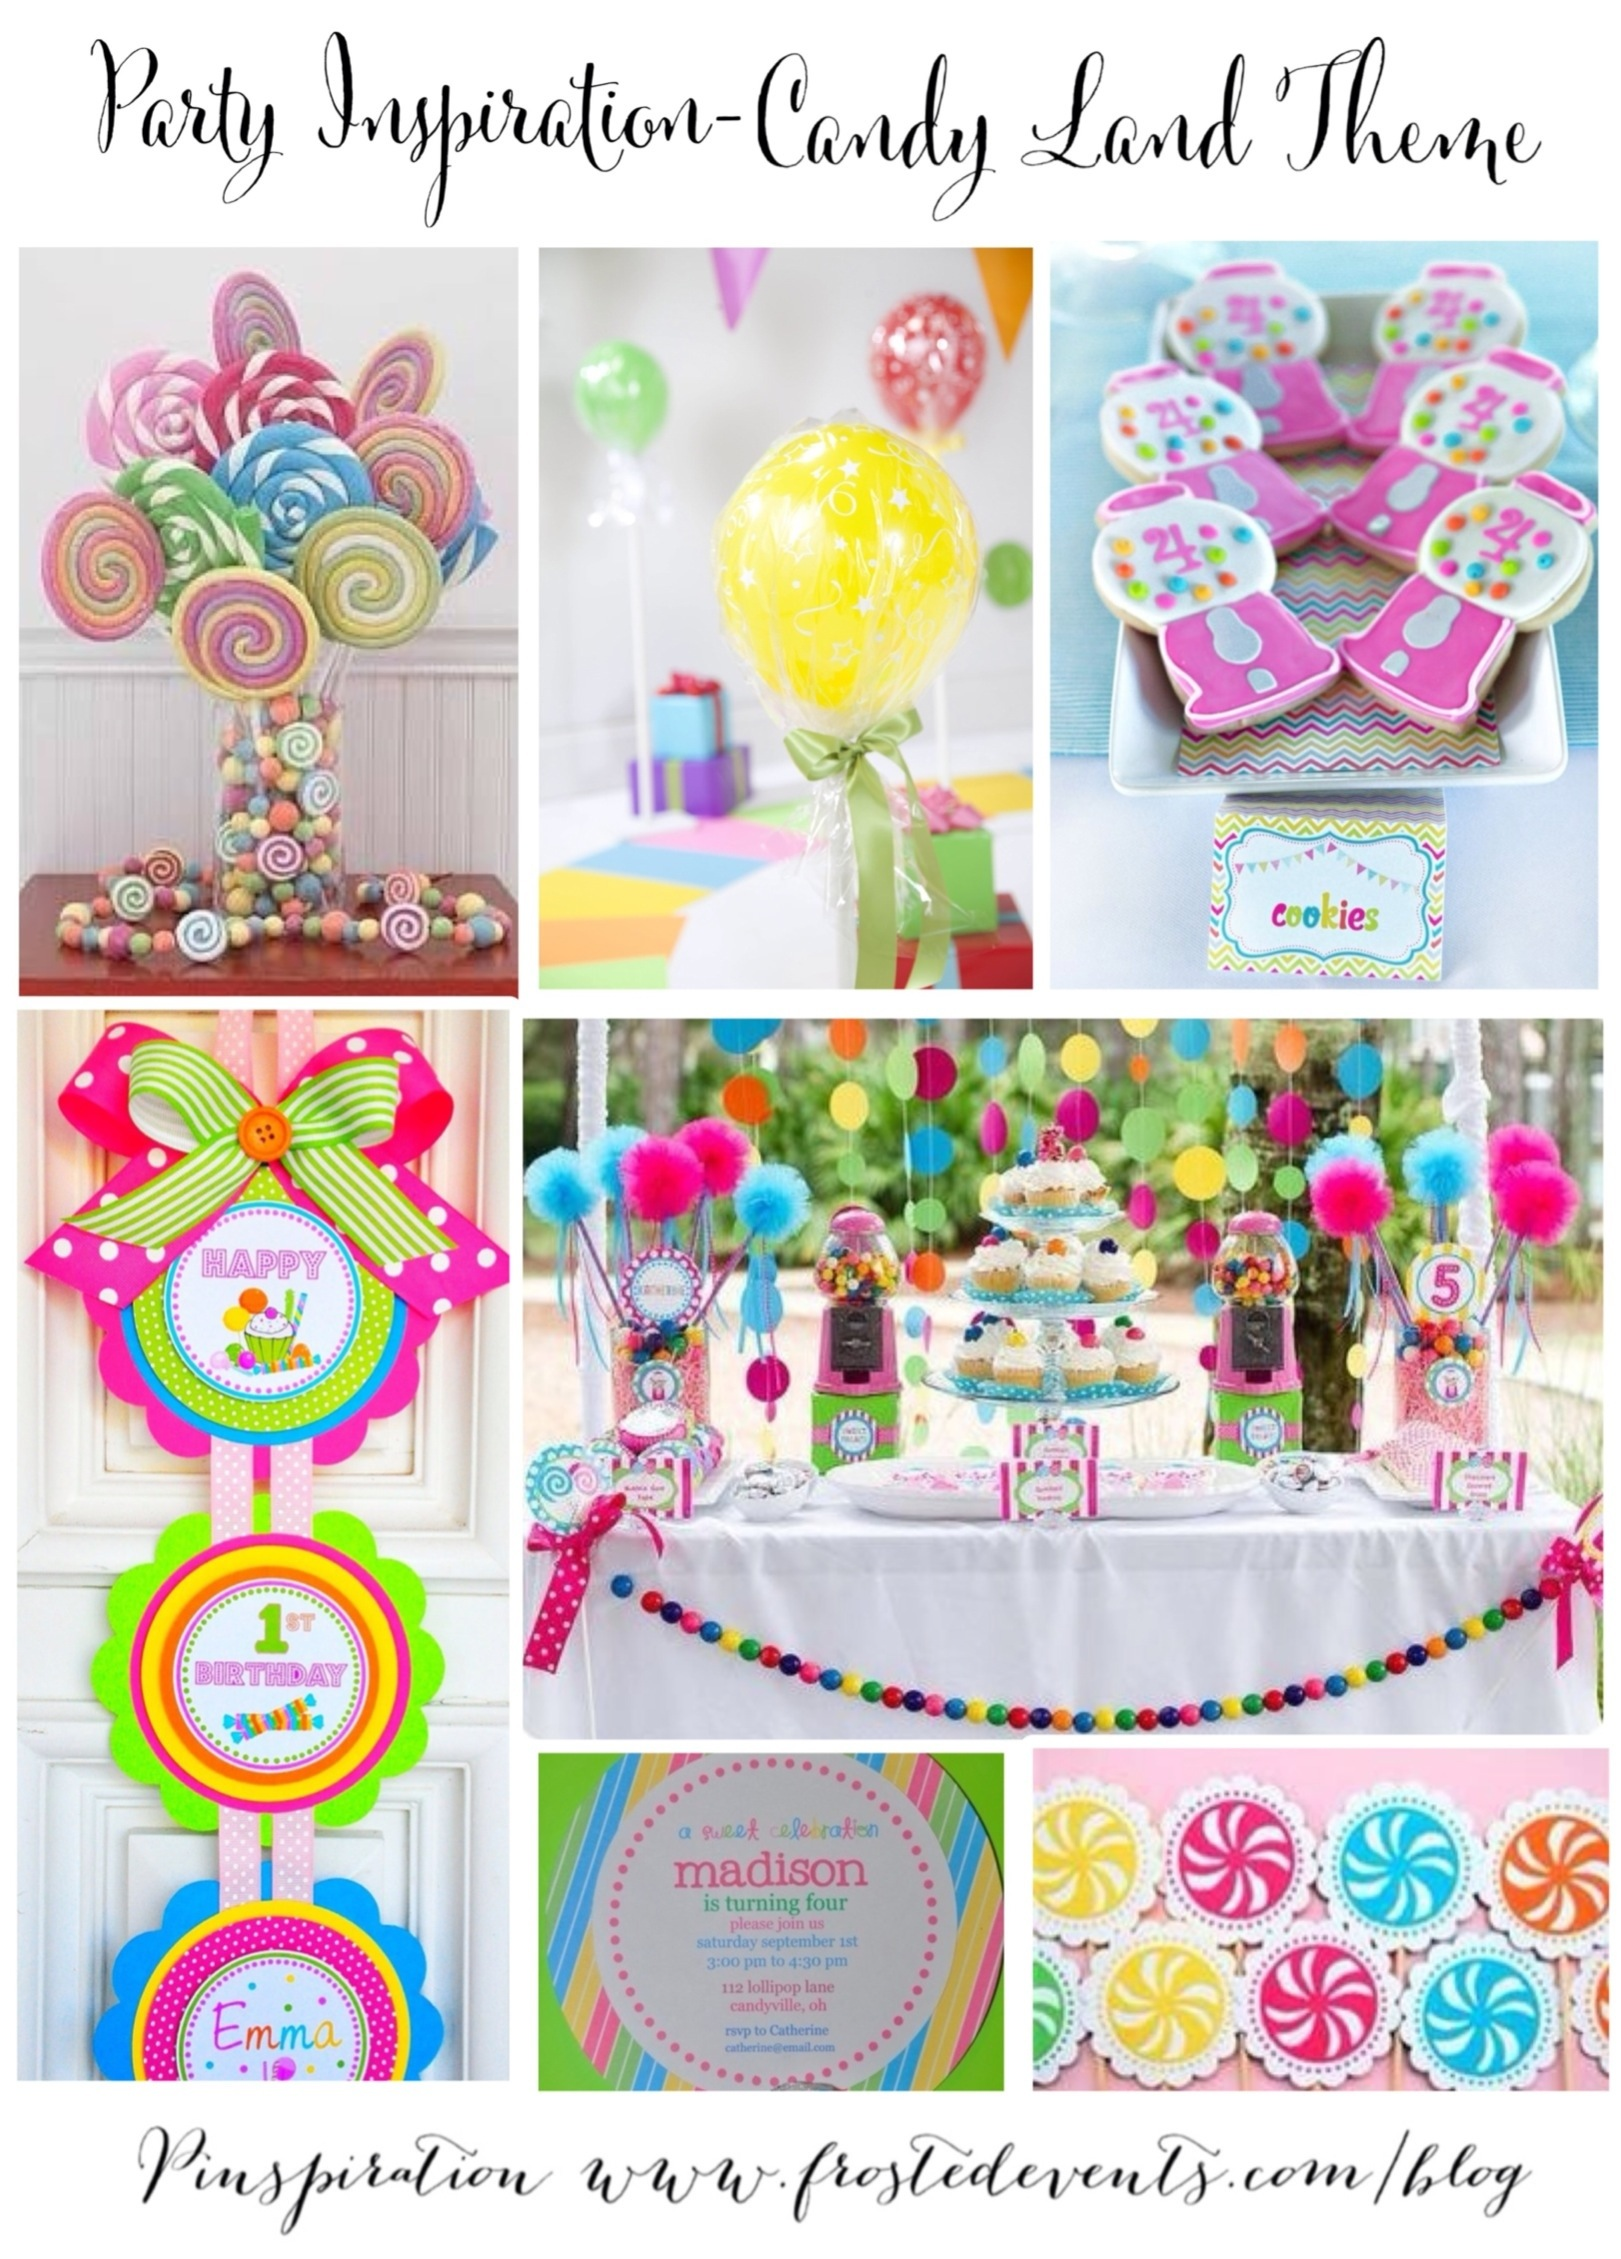 Party Inspiration Candy Land Theme